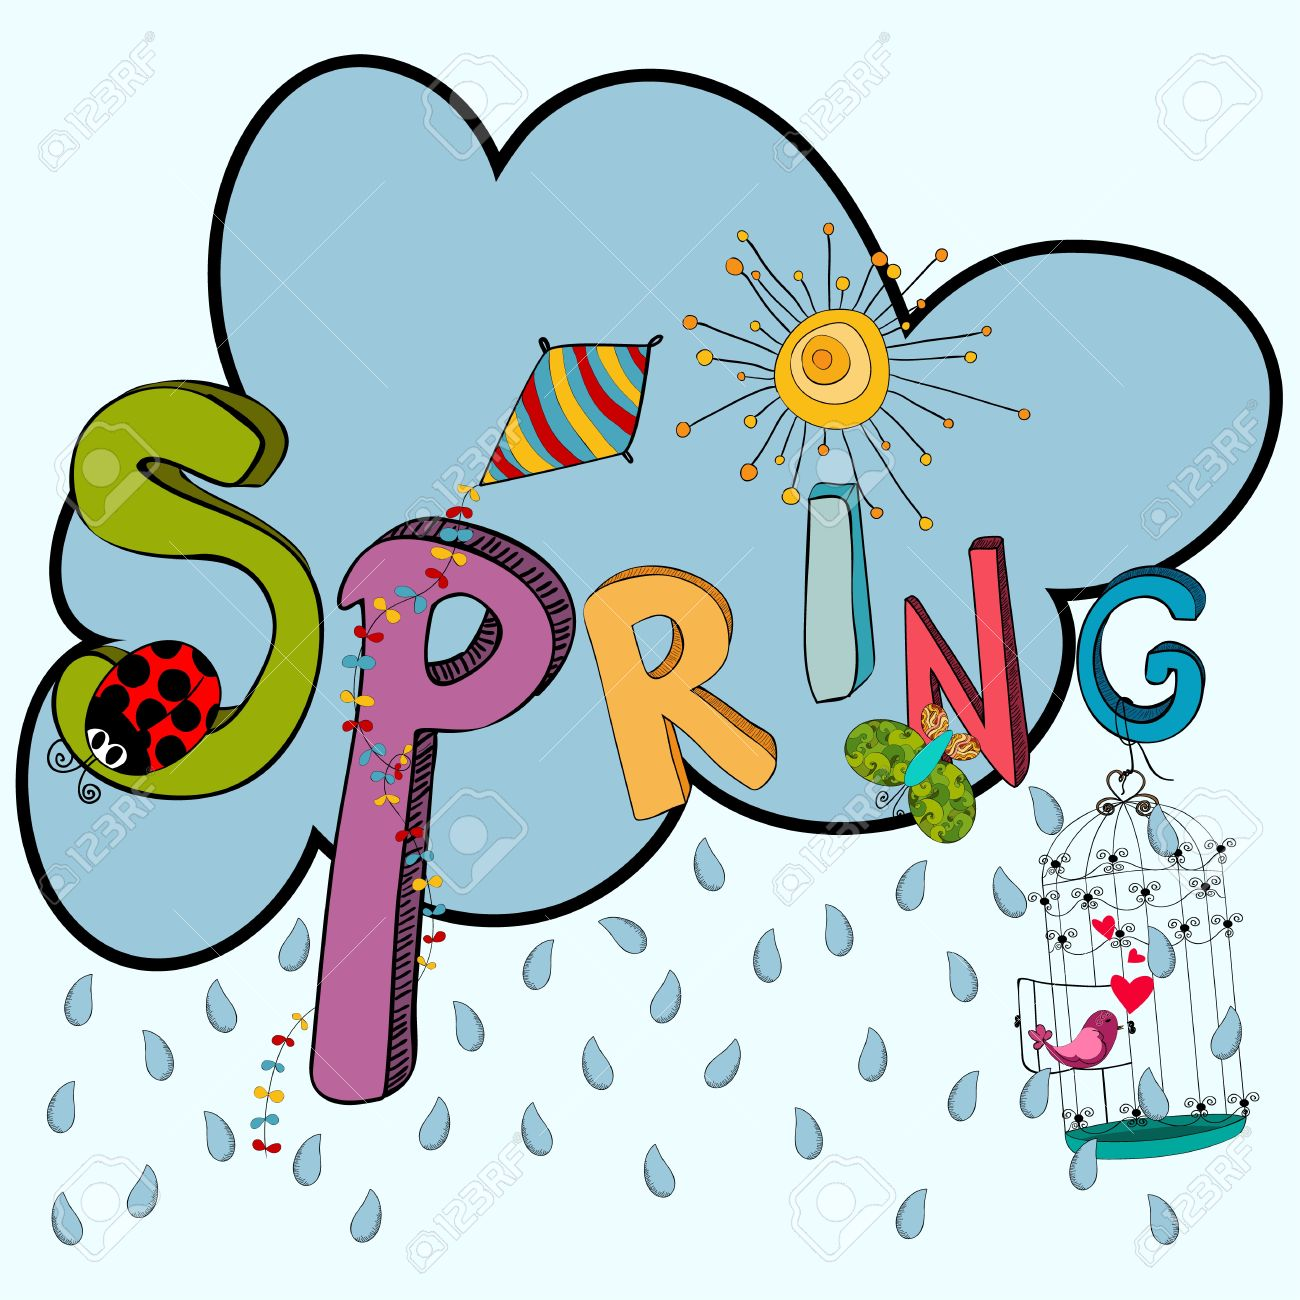 Spring clouds clipart 20 free Cliparts | Download images ...